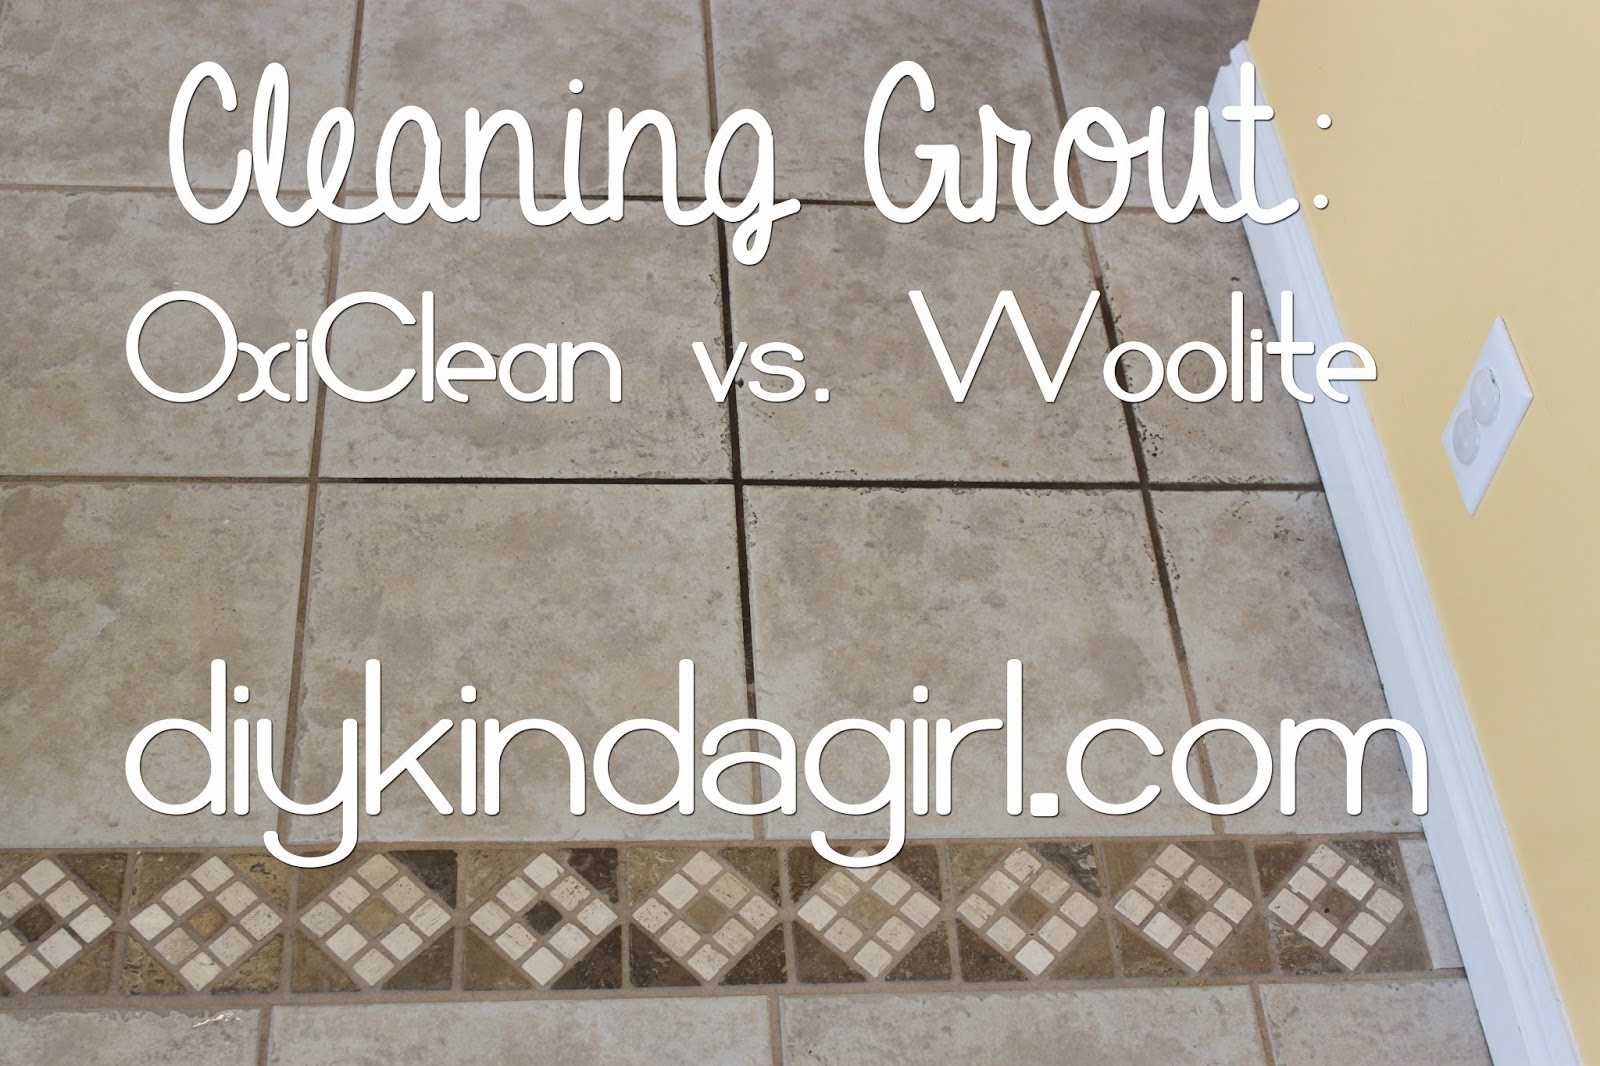 How to clean floor tile grout with oxiclean how to clean floor tile grout with oxiclean diy kinda girl diy household tip cleaning grout oxiclean vs dailygadgetfo Gallery